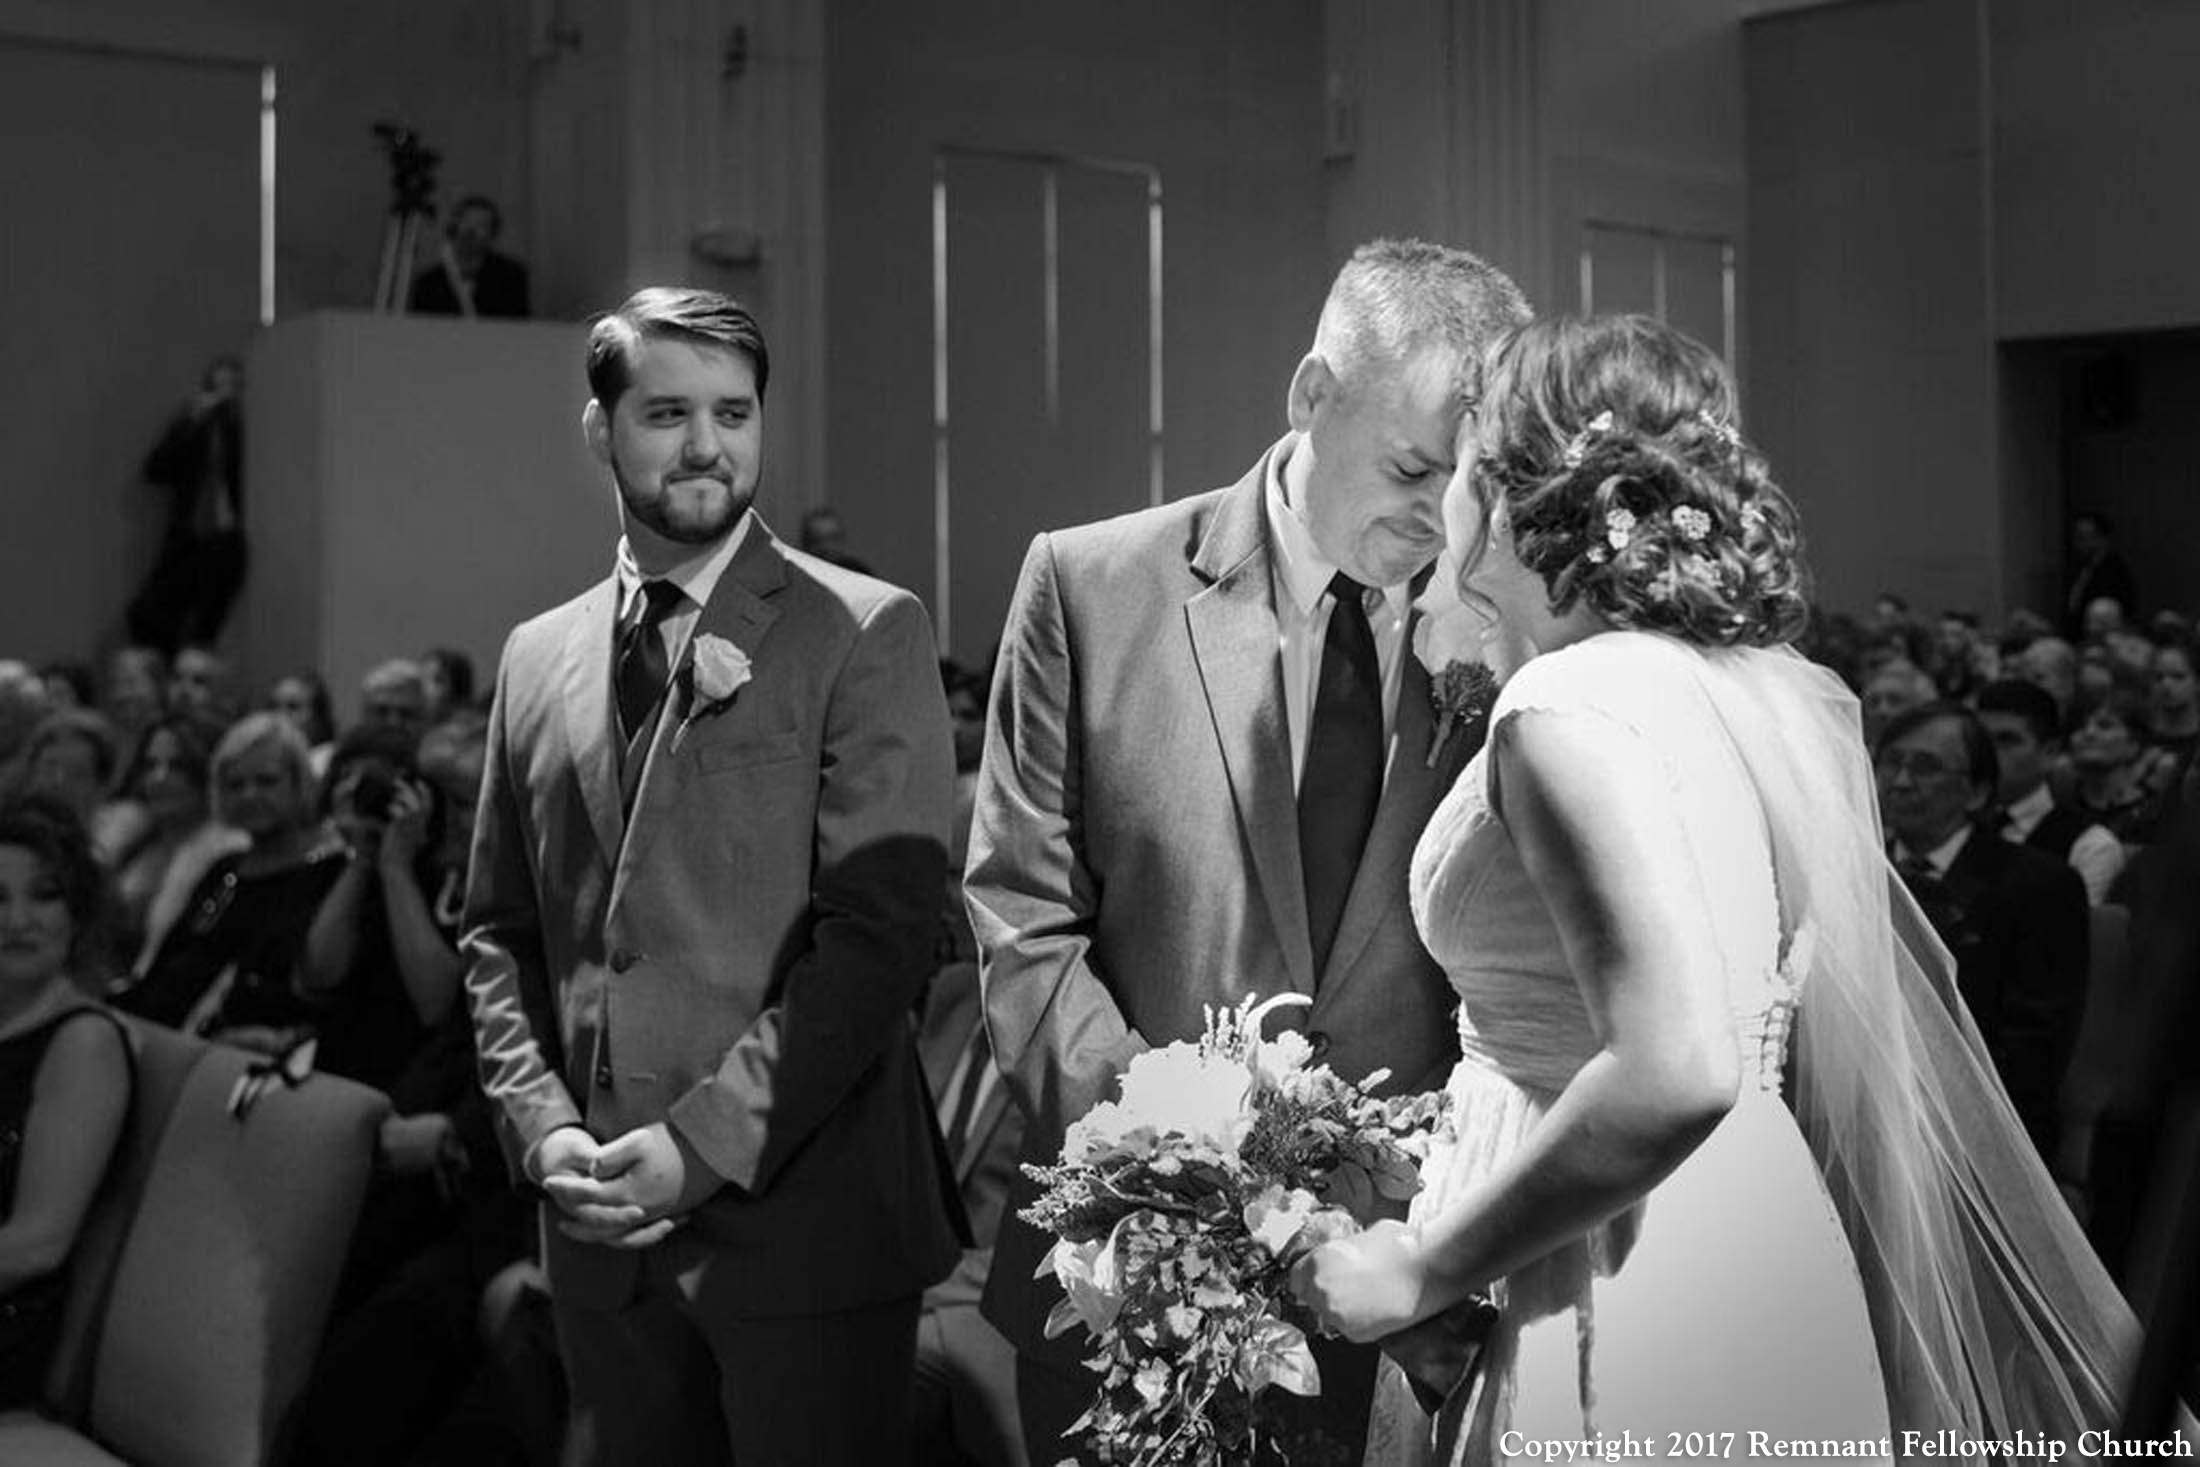 Gadke-Holmes-Remnant-Fellowship-Wedding-Bride-and-Groom-with-Father-of-Bride